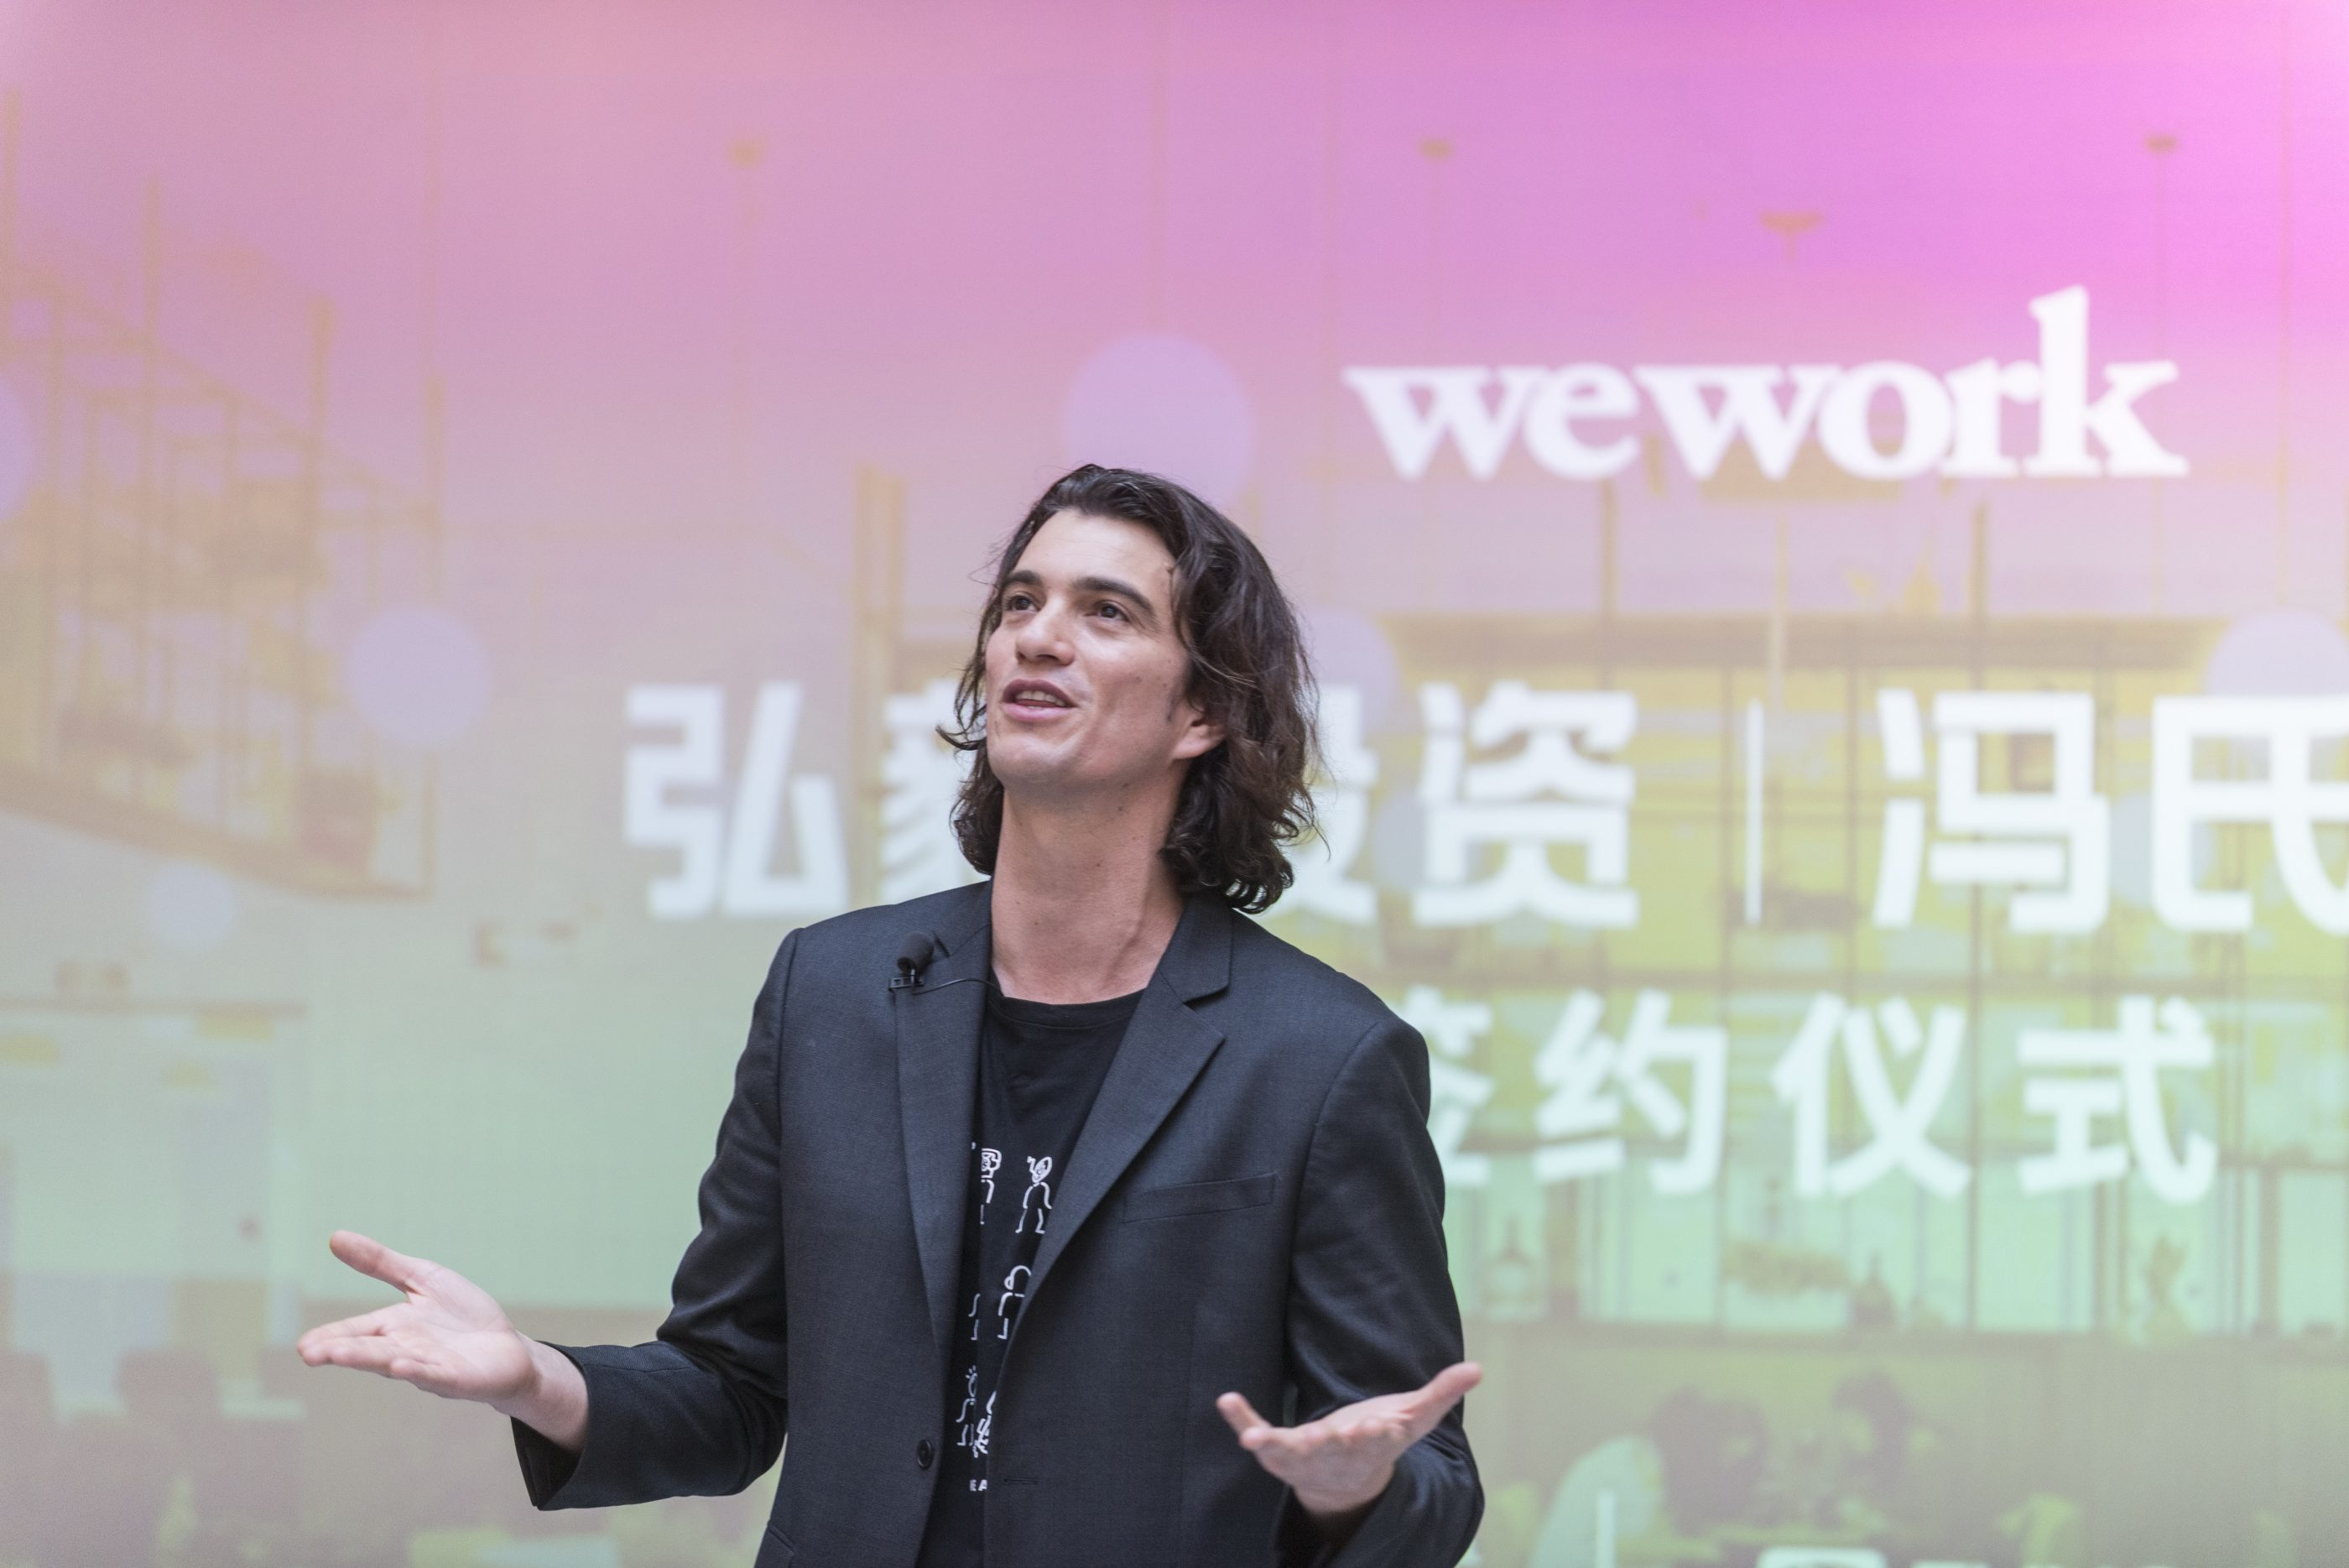 What WeWork's IPO Prospectus Tells Us About Its Business